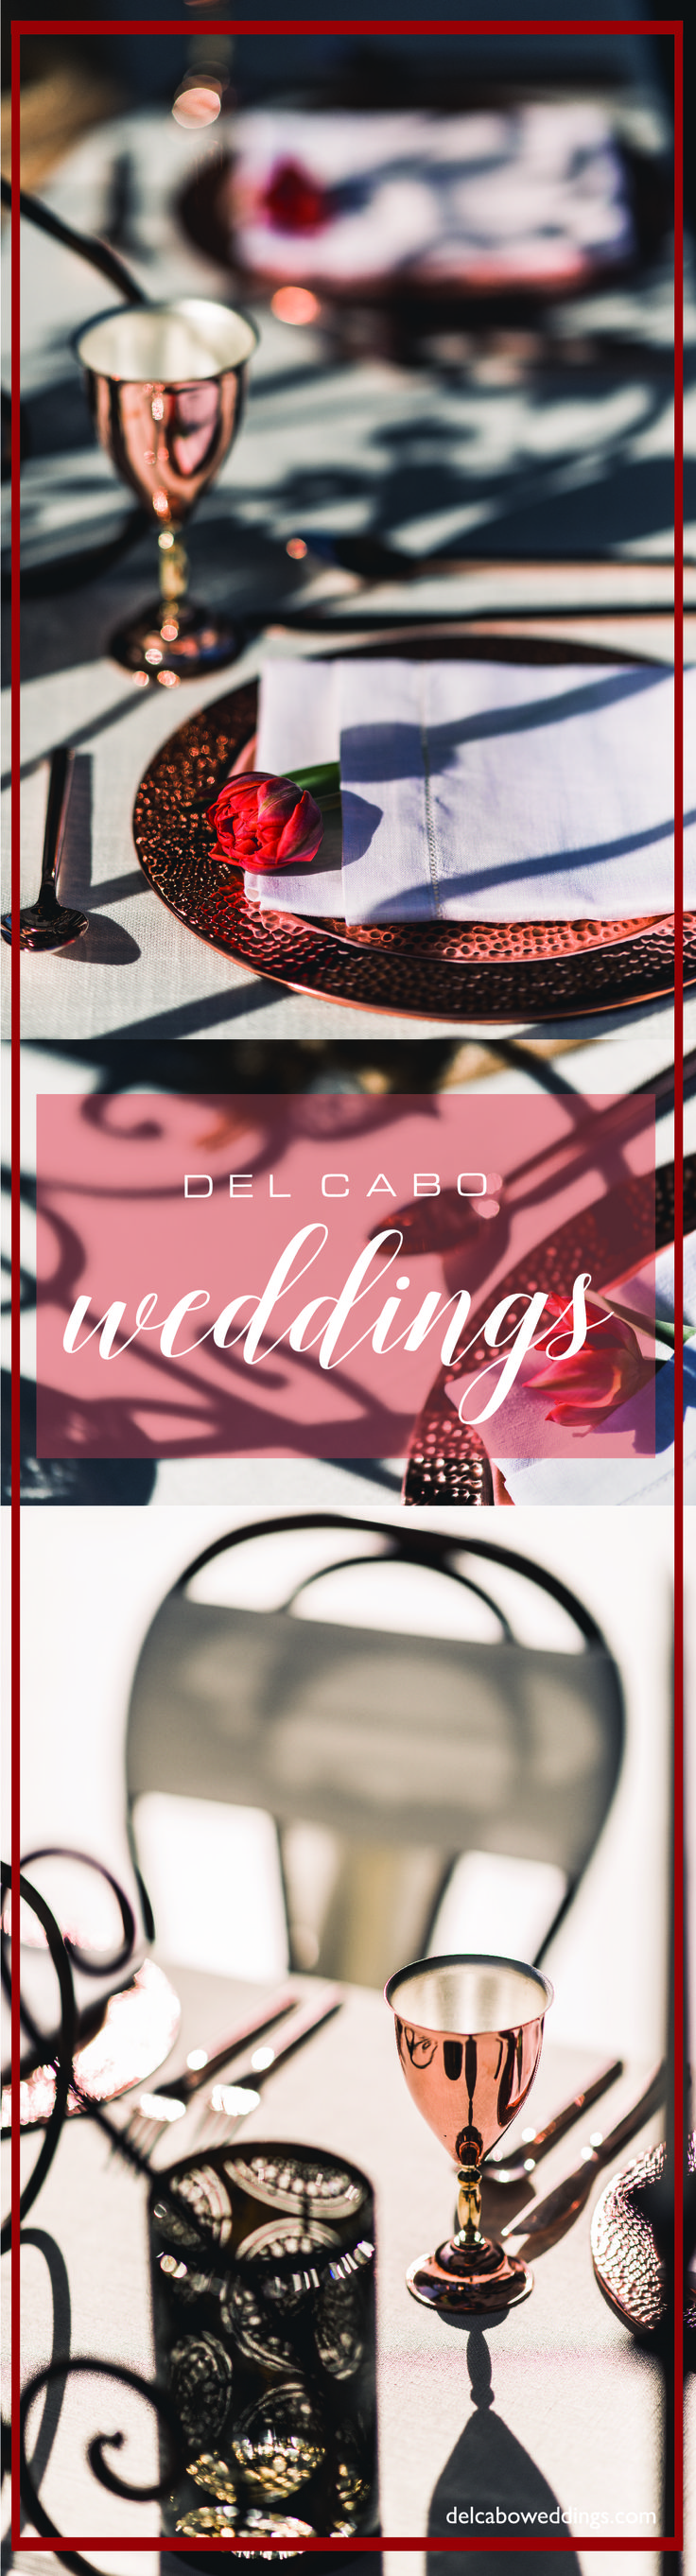 Del Cabo Weddings will amaze you with Mexican beach wedding ideas for you! Check out our board, you will love our decorations!